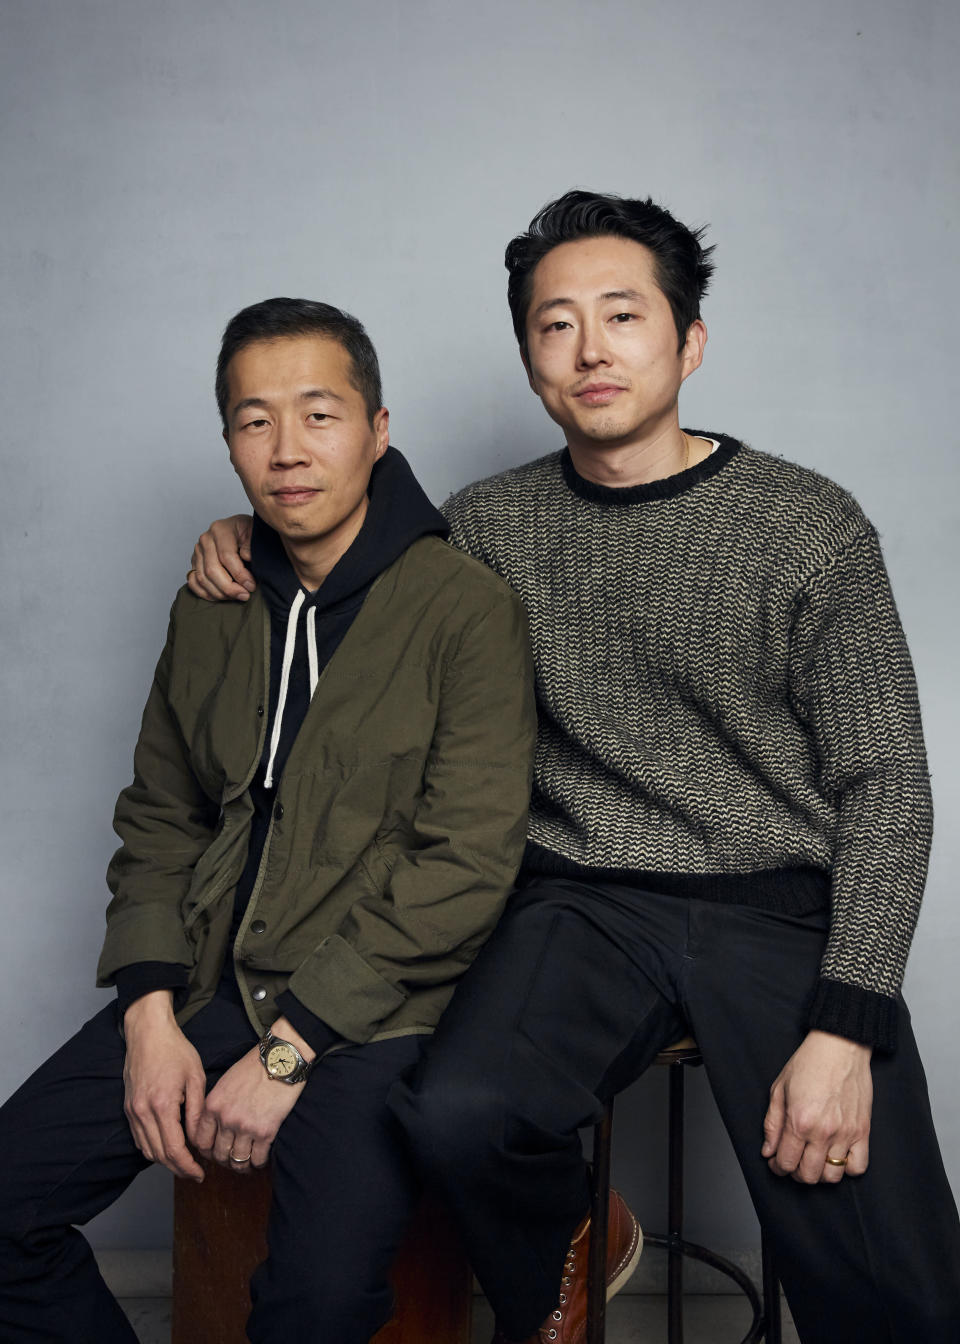 """FILE- Director Lee Isaac Chung, left, and Steven Yeun pose for a portrait to promote the film """"Minari"""" during the Sundance Film Festival in Park City, Utah on Jan. 27, 2020. (Photo by Taylor Jewell/Invision/AP, File)"""